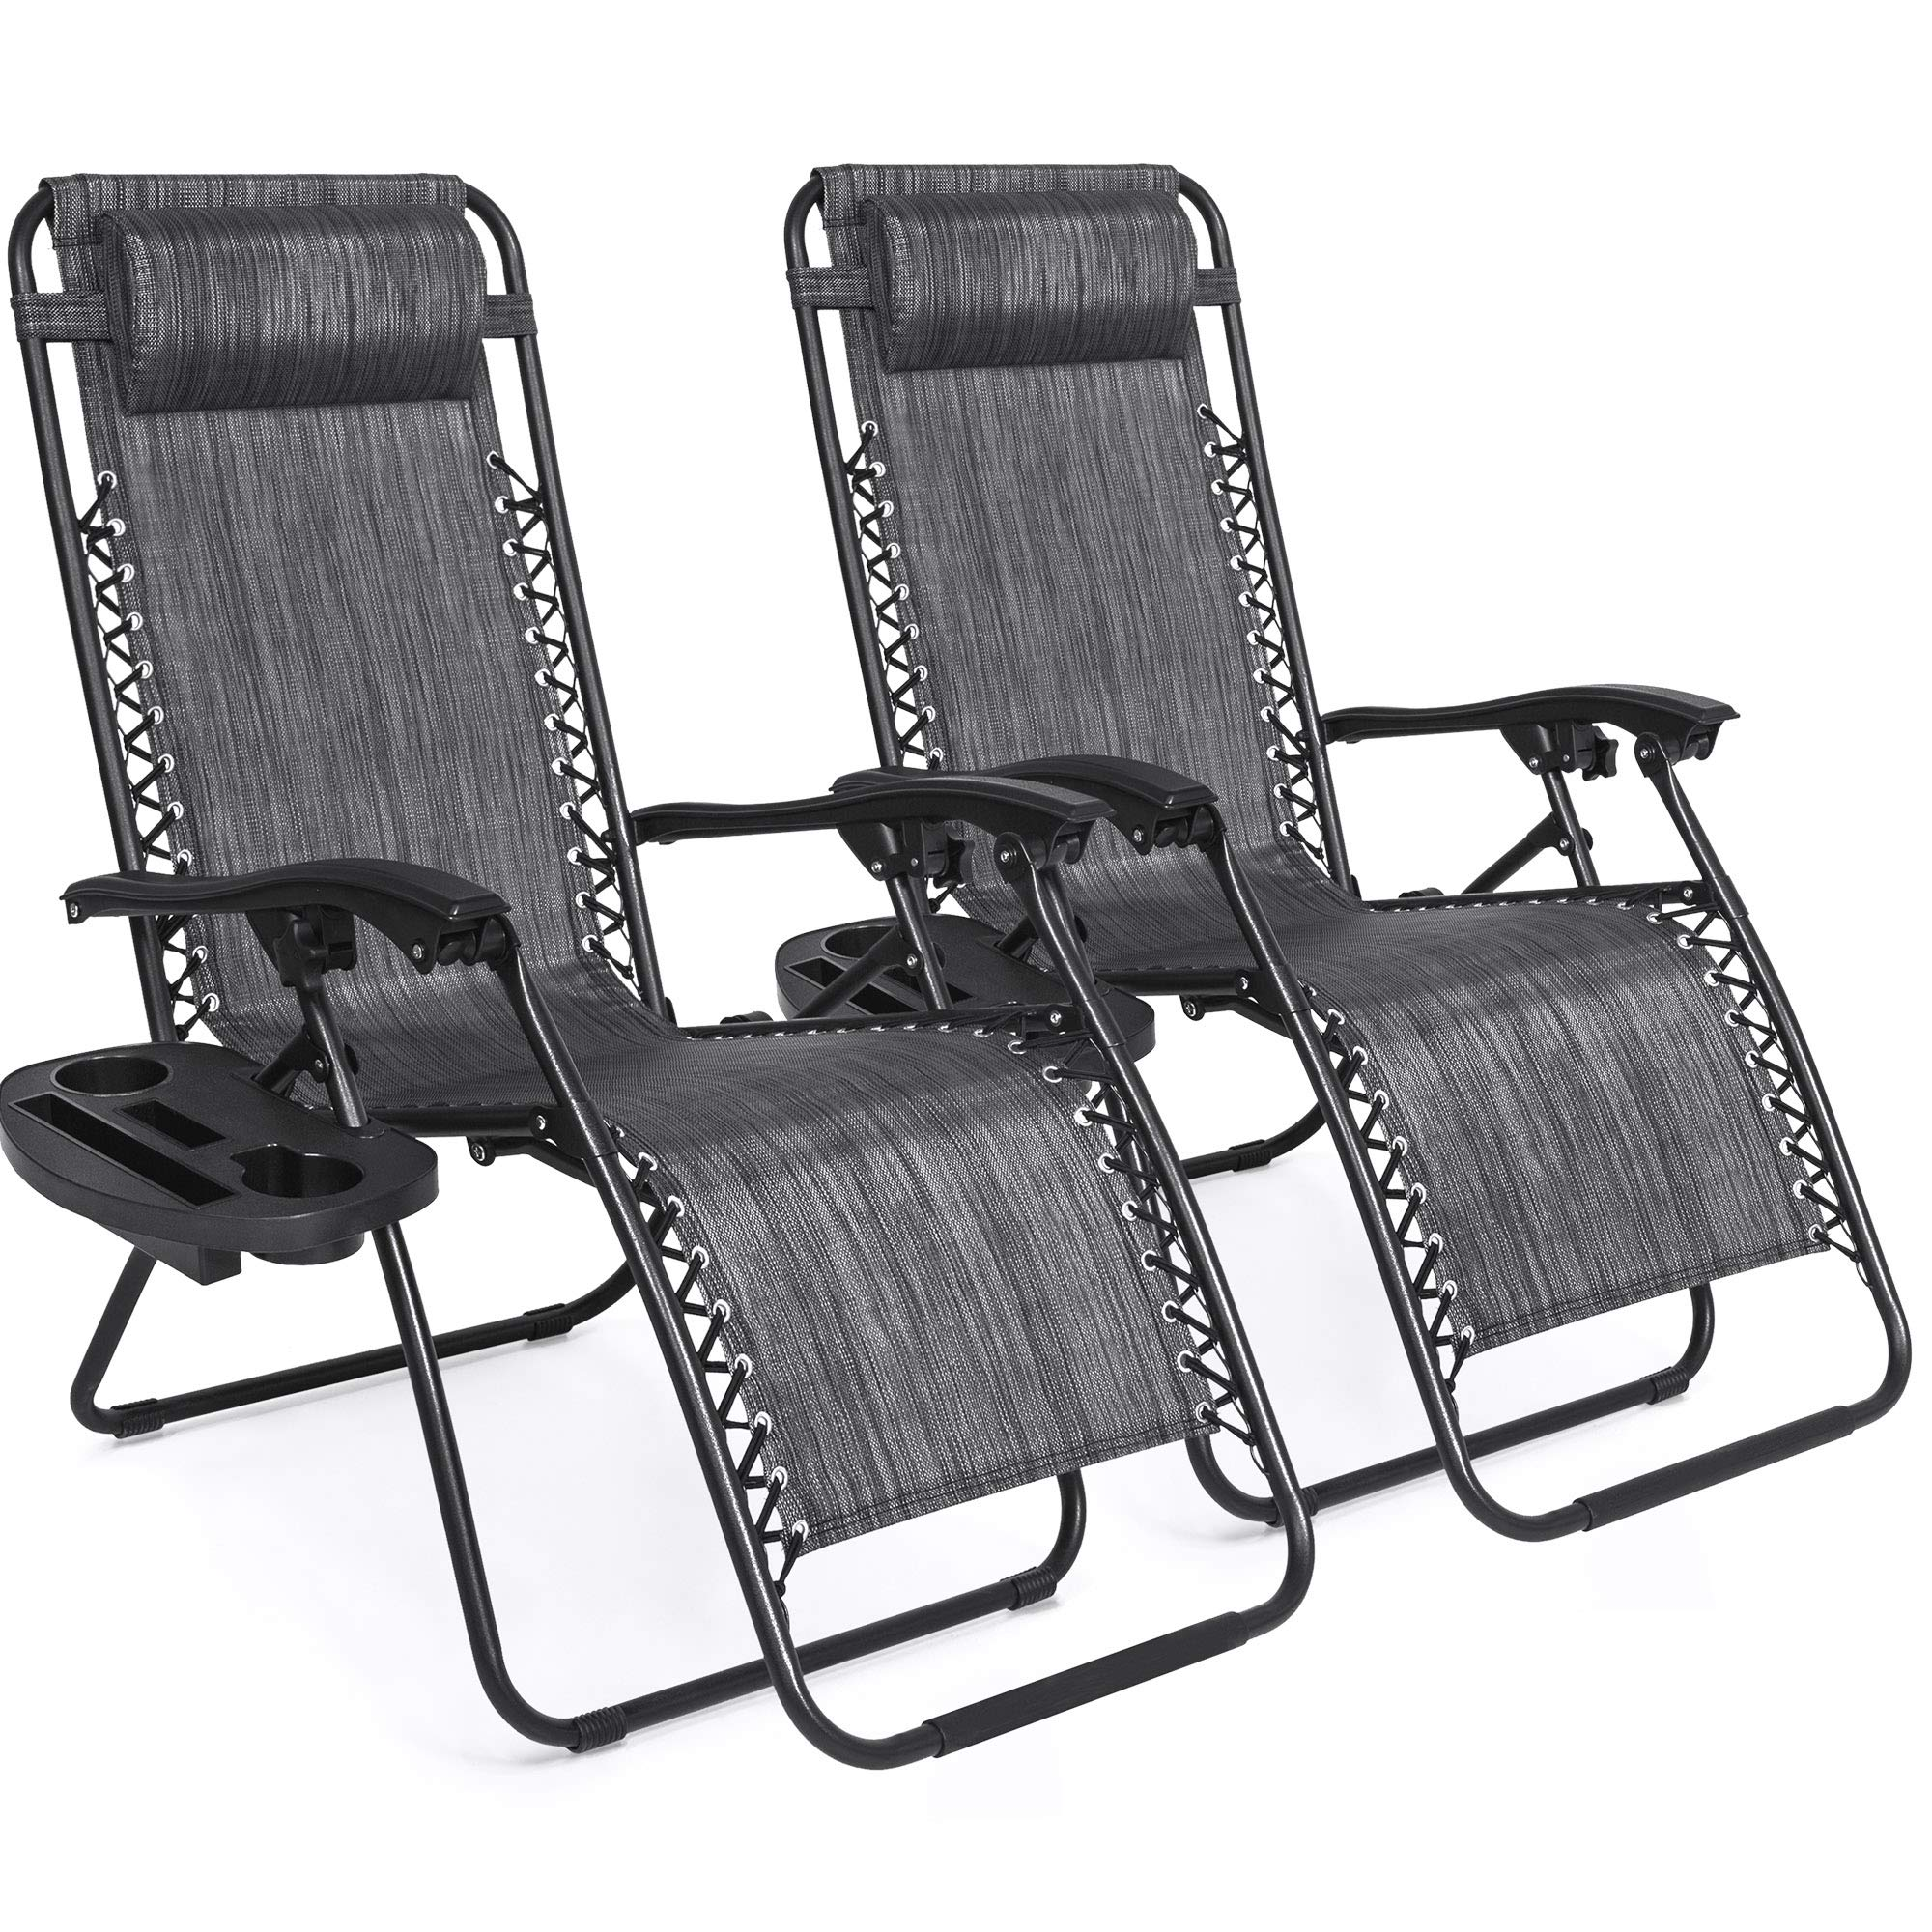 Best Choice Products Set of 2 Adjustable Zero Gravity Lounge Chair Recliners for Patio, Pool w/ Cup Holder Trays, Pillows - Gray by Best Choice Products